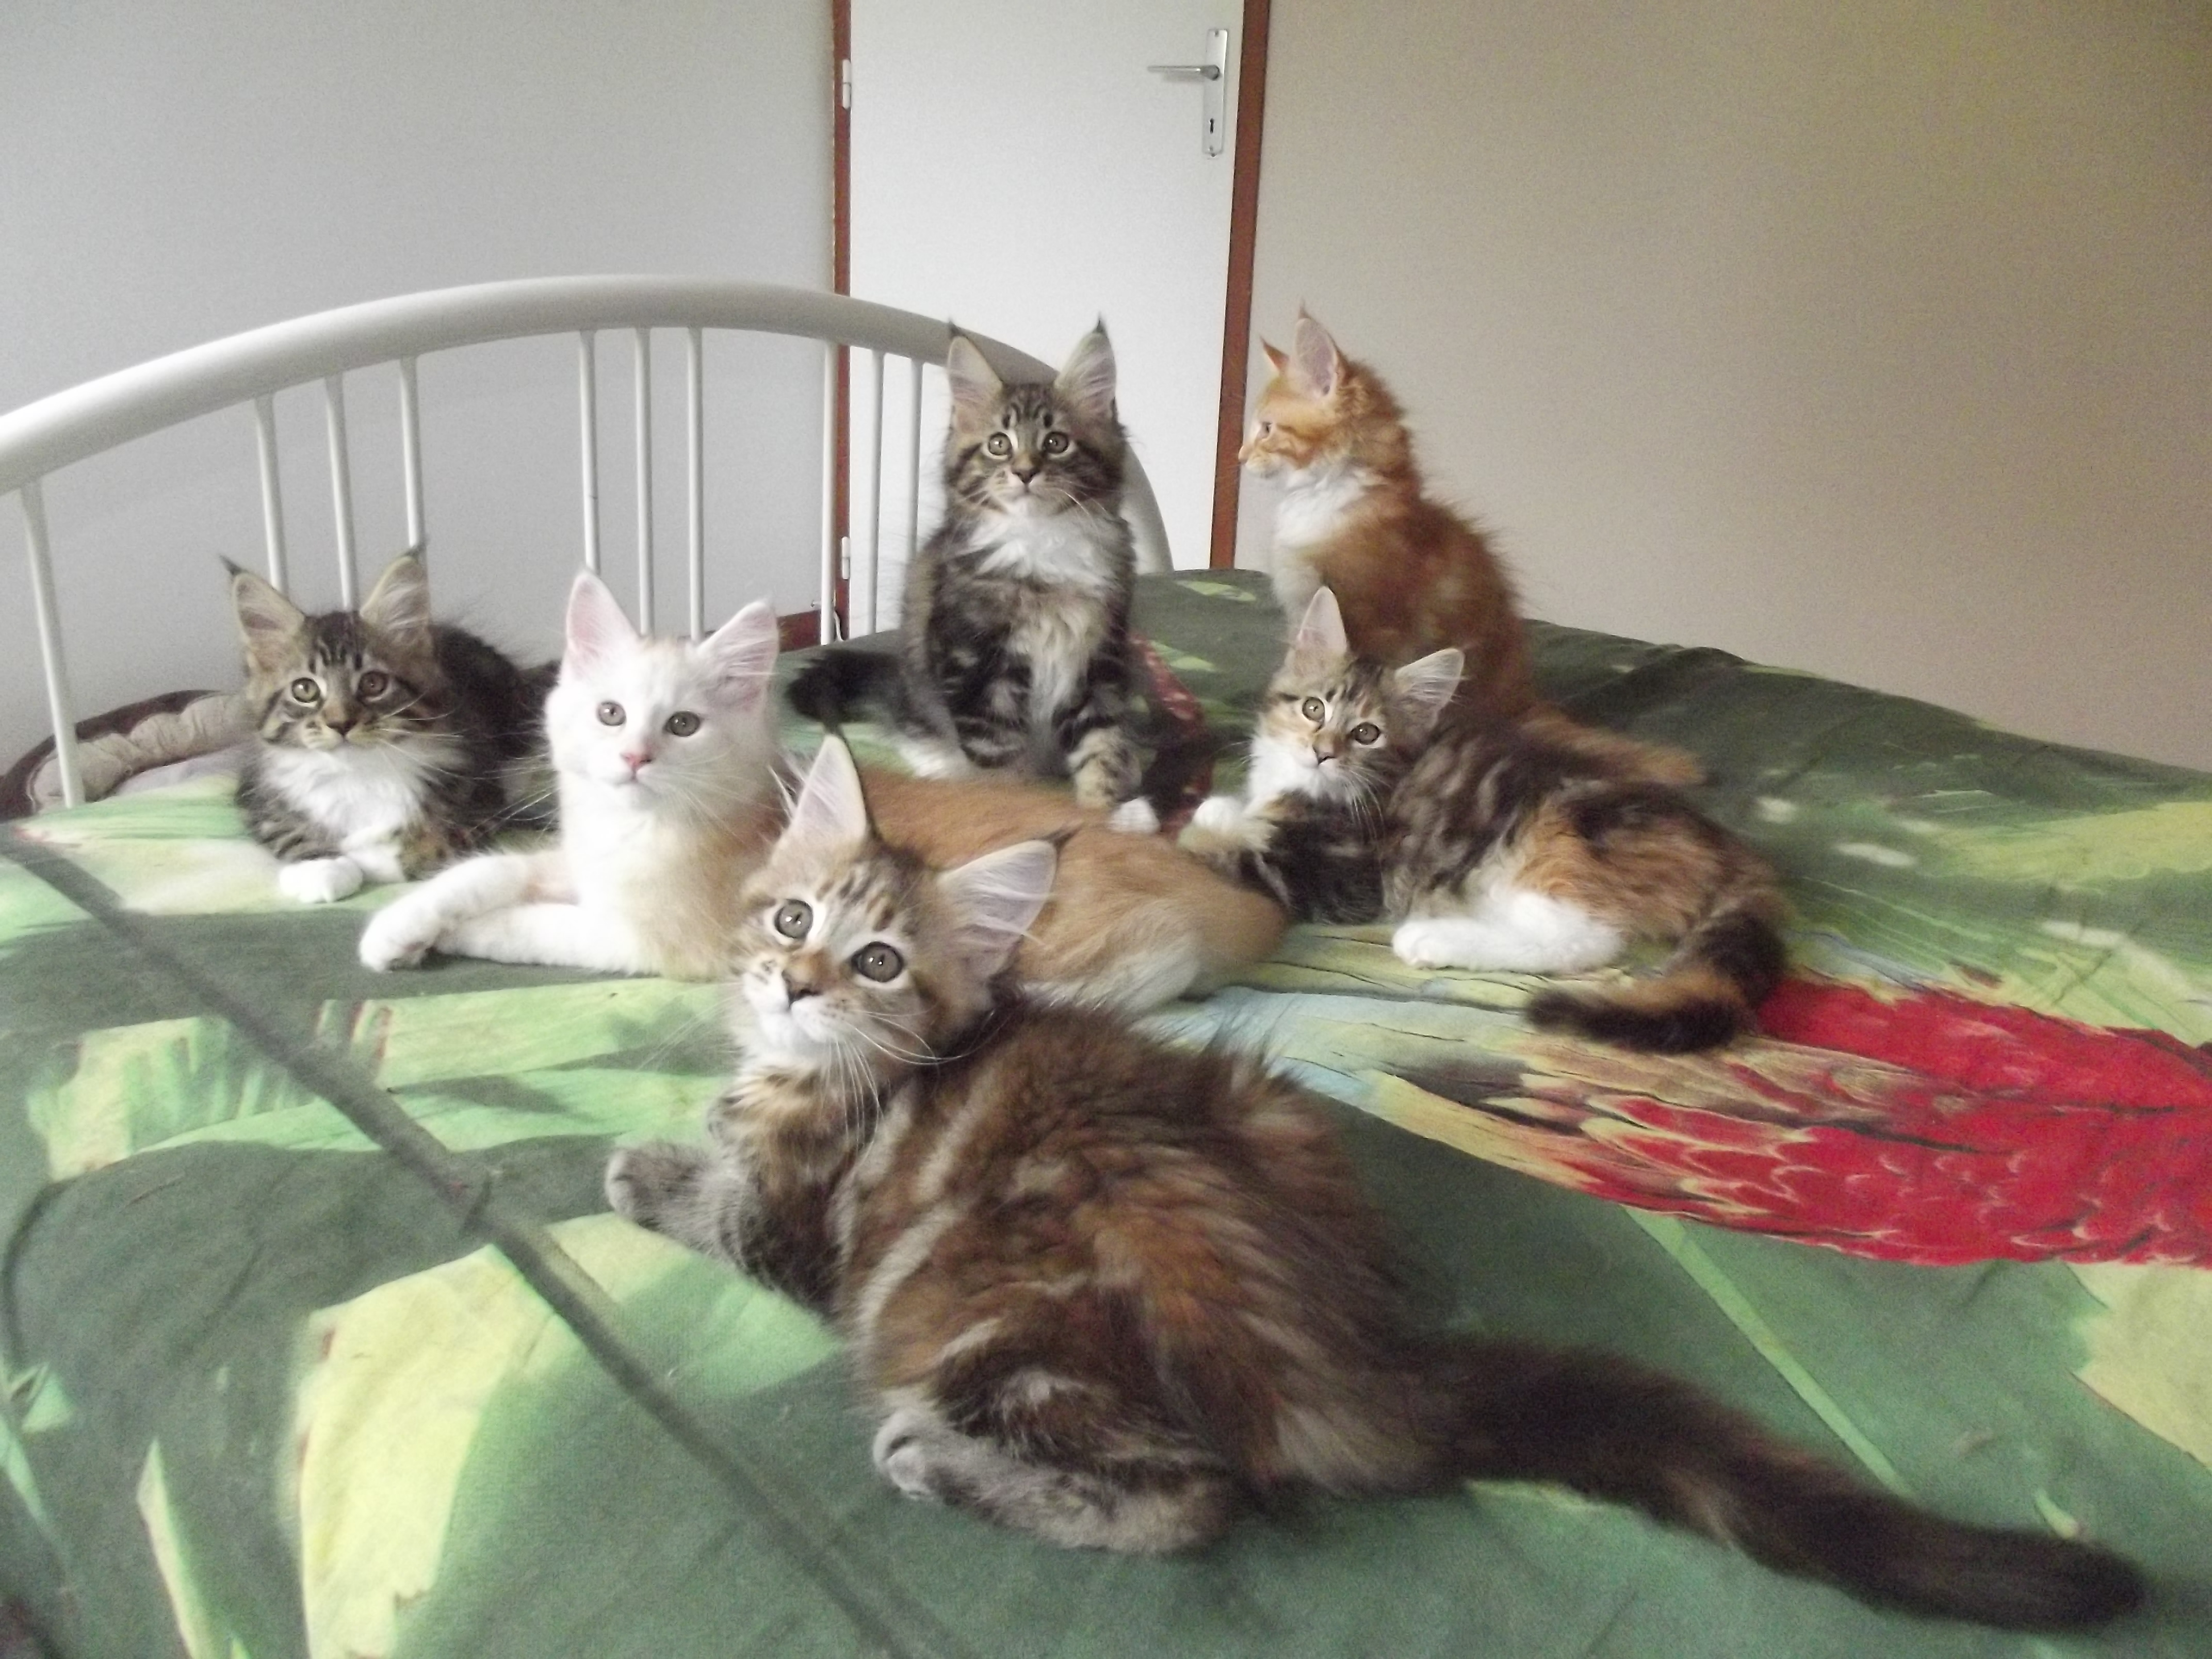 Les chatons de Highlight - 2016